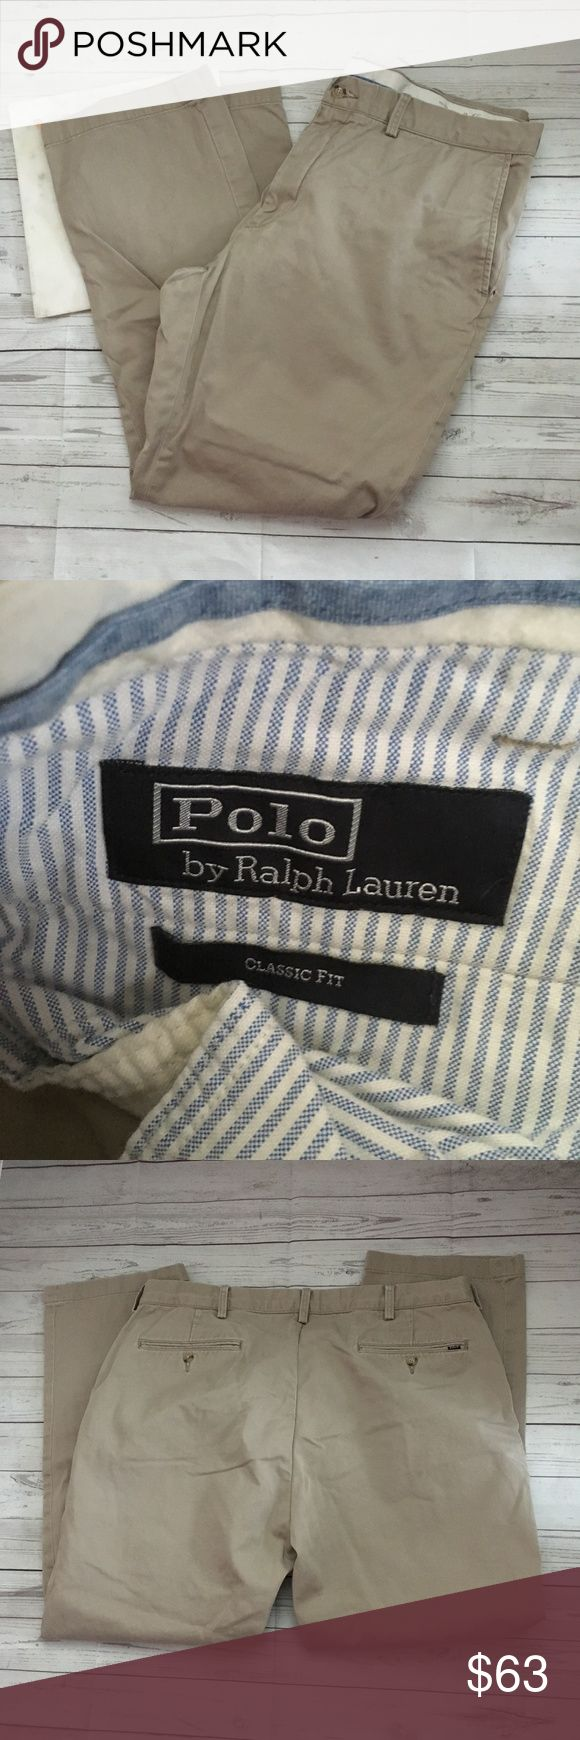 polo ralph lauren mens 38/30 khaki pants classic f gently used with no flaws  great for work  polo ralph lauren 38-30   waist = 18.5 inches  inseam = 28 inches Ralph Lauren Pants Chinos & Khakis